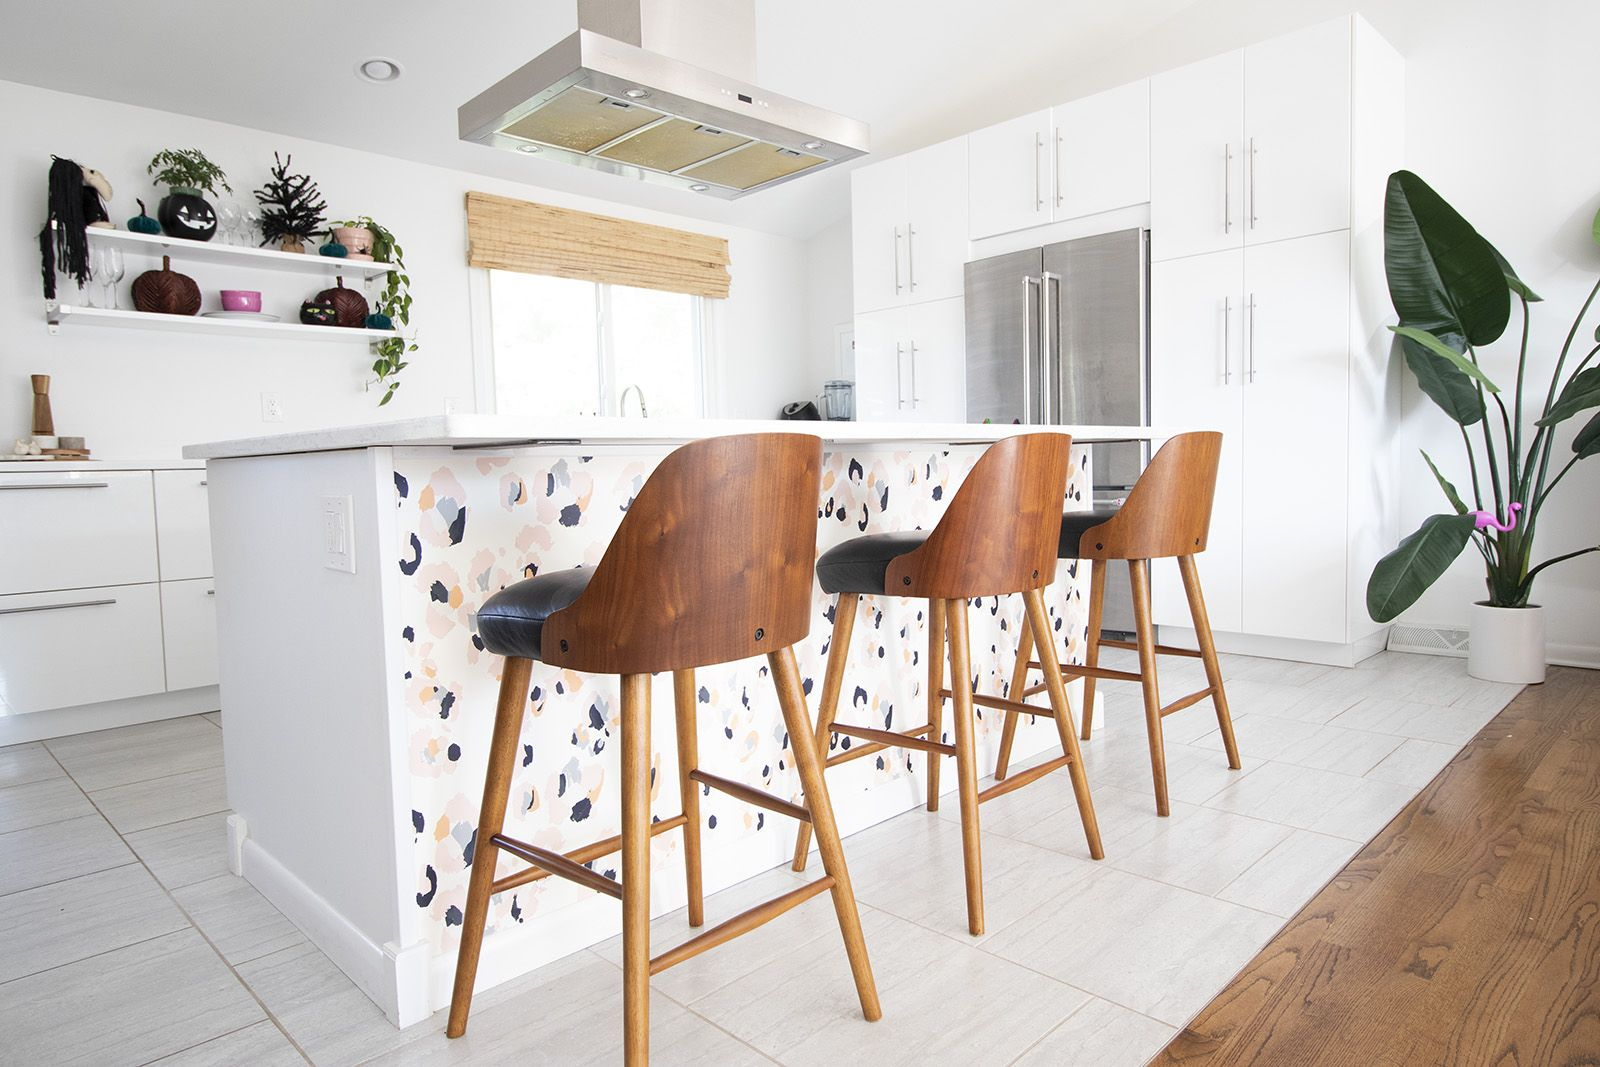 Wallpapering Our Kitchen Island Stools For Kitchen Island Wallpaper Kitchen Island Kitchen Wallpaper